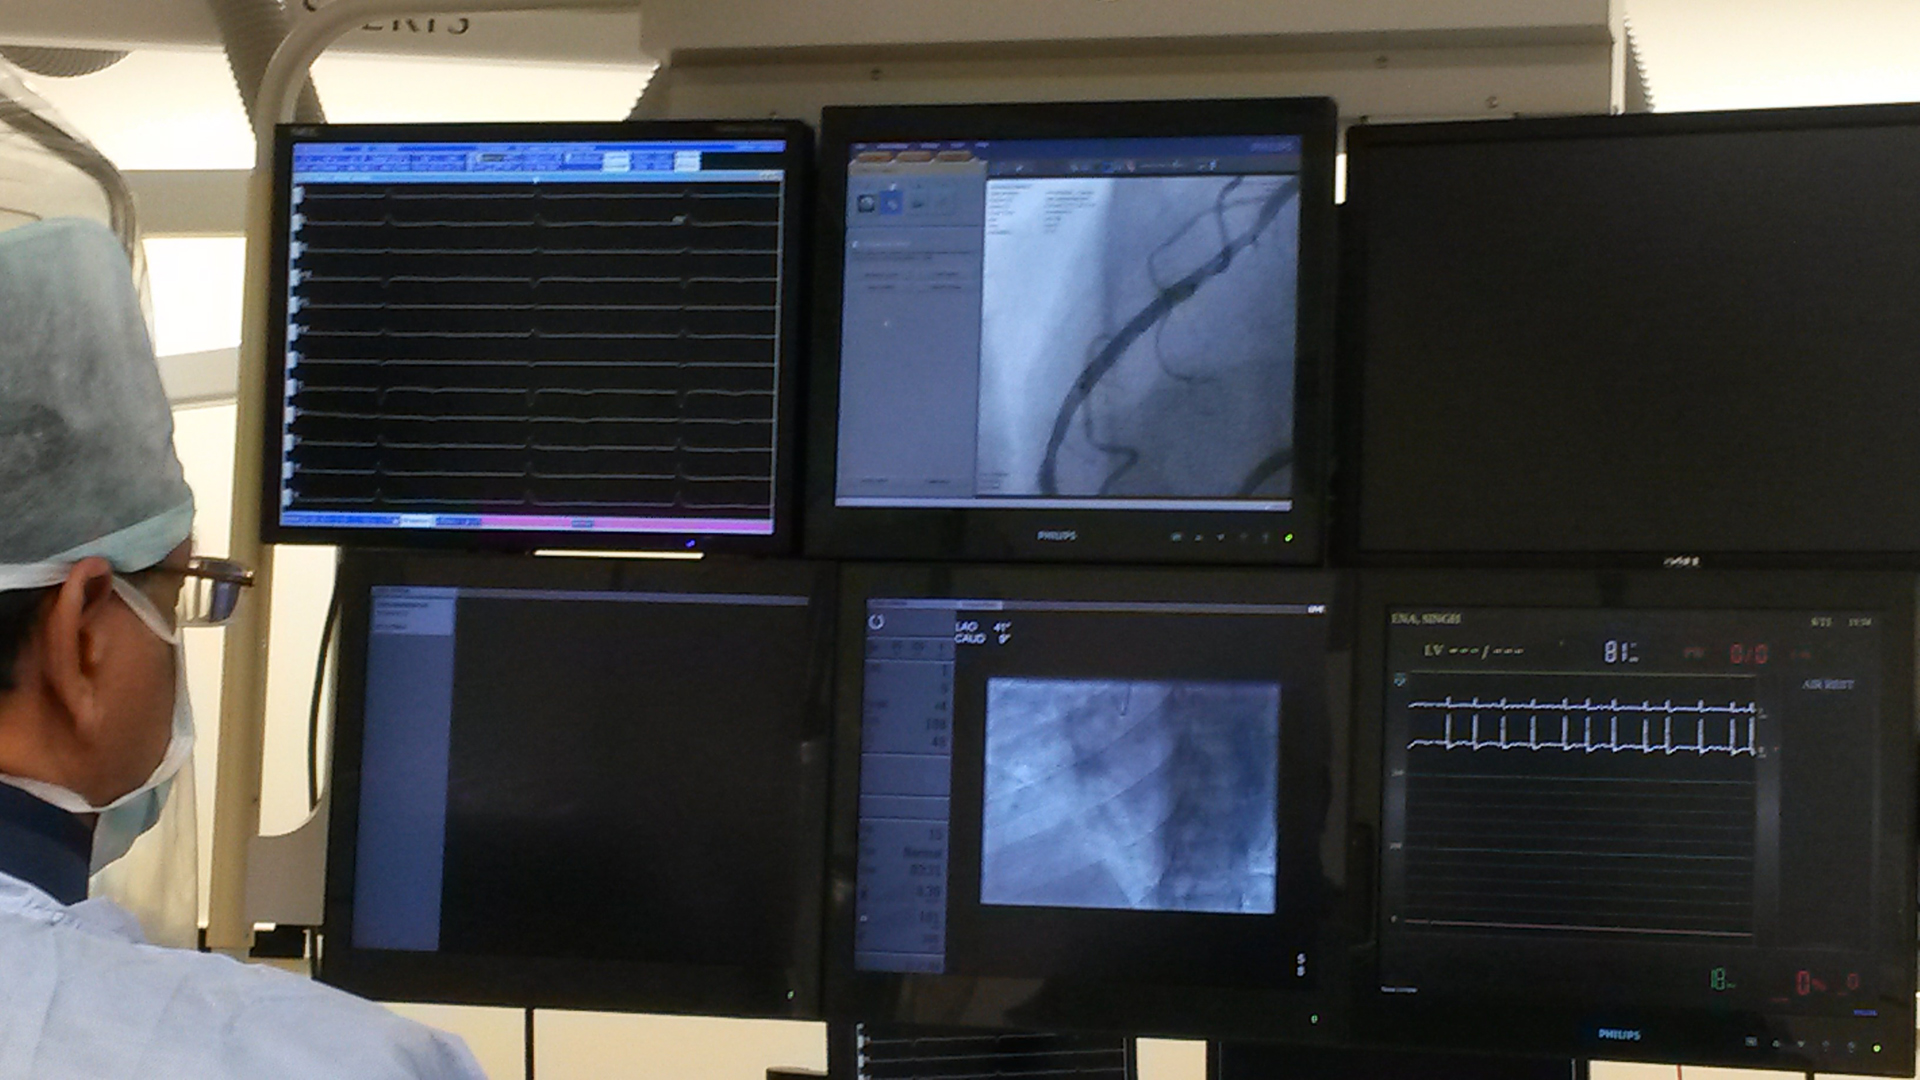 Dr Ravi Kishore performing angiogram at Health City Cayman Island PTCA